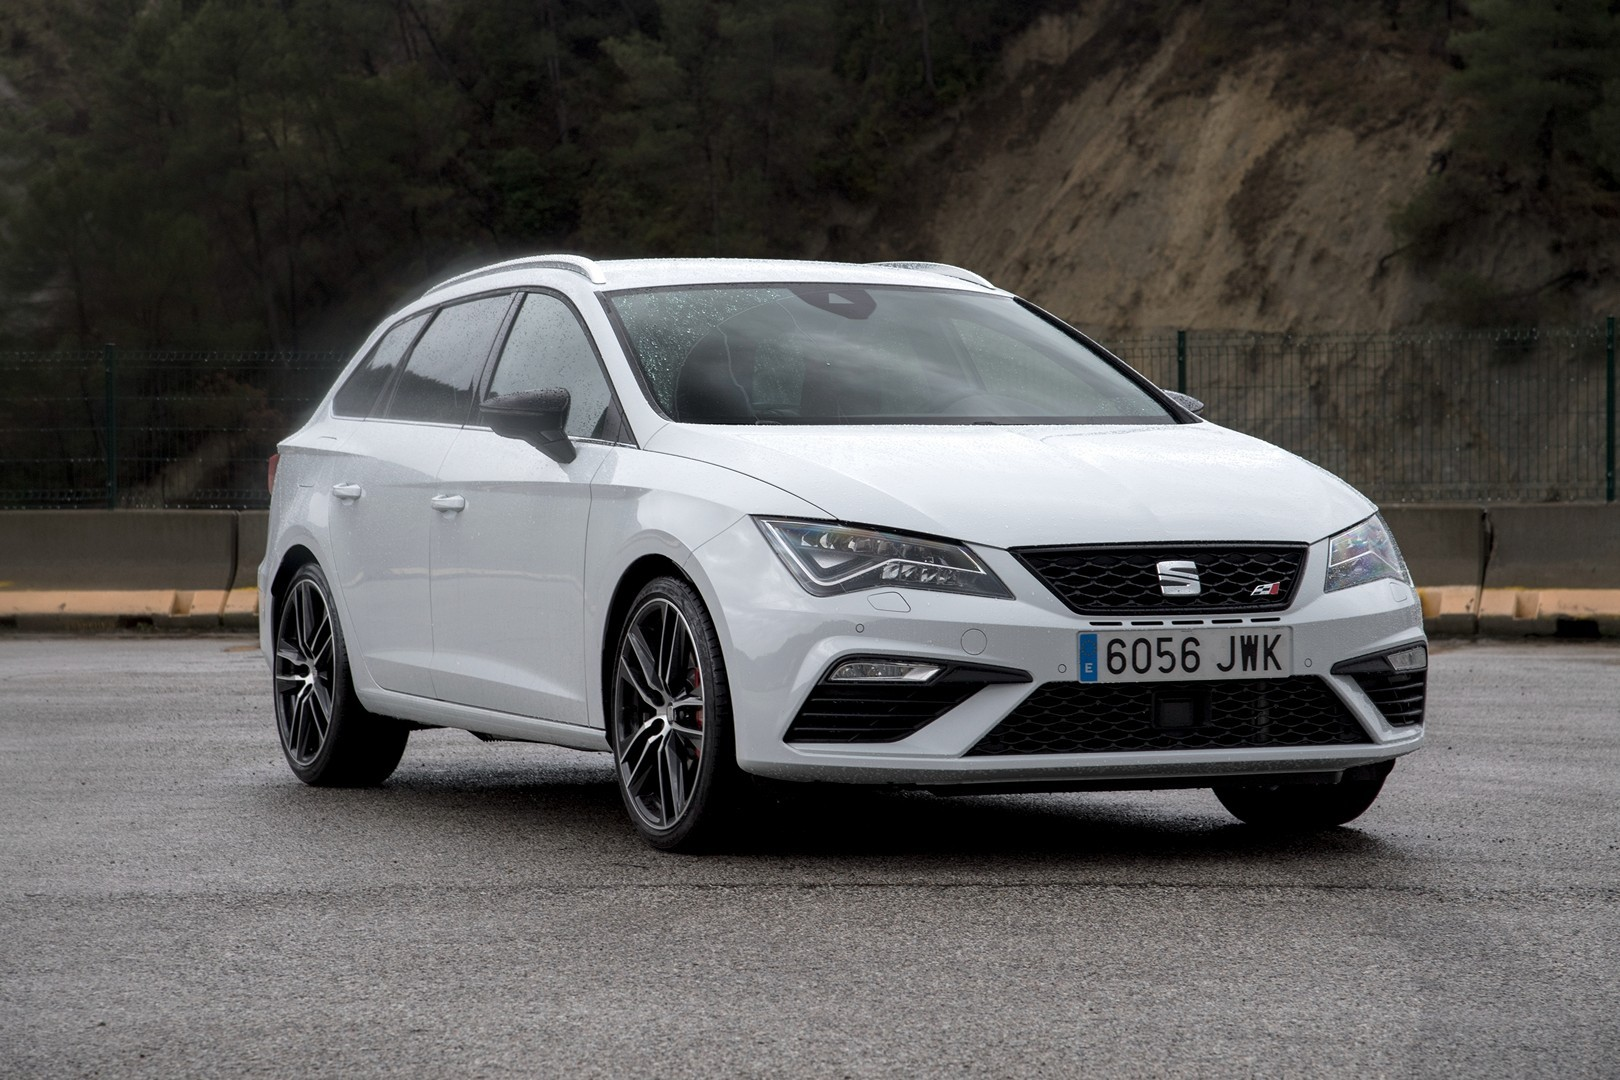 new 2017 seat leon cupra 300 photo gallery released. Black Bedroom Furniture Sets. Home Design Ideas